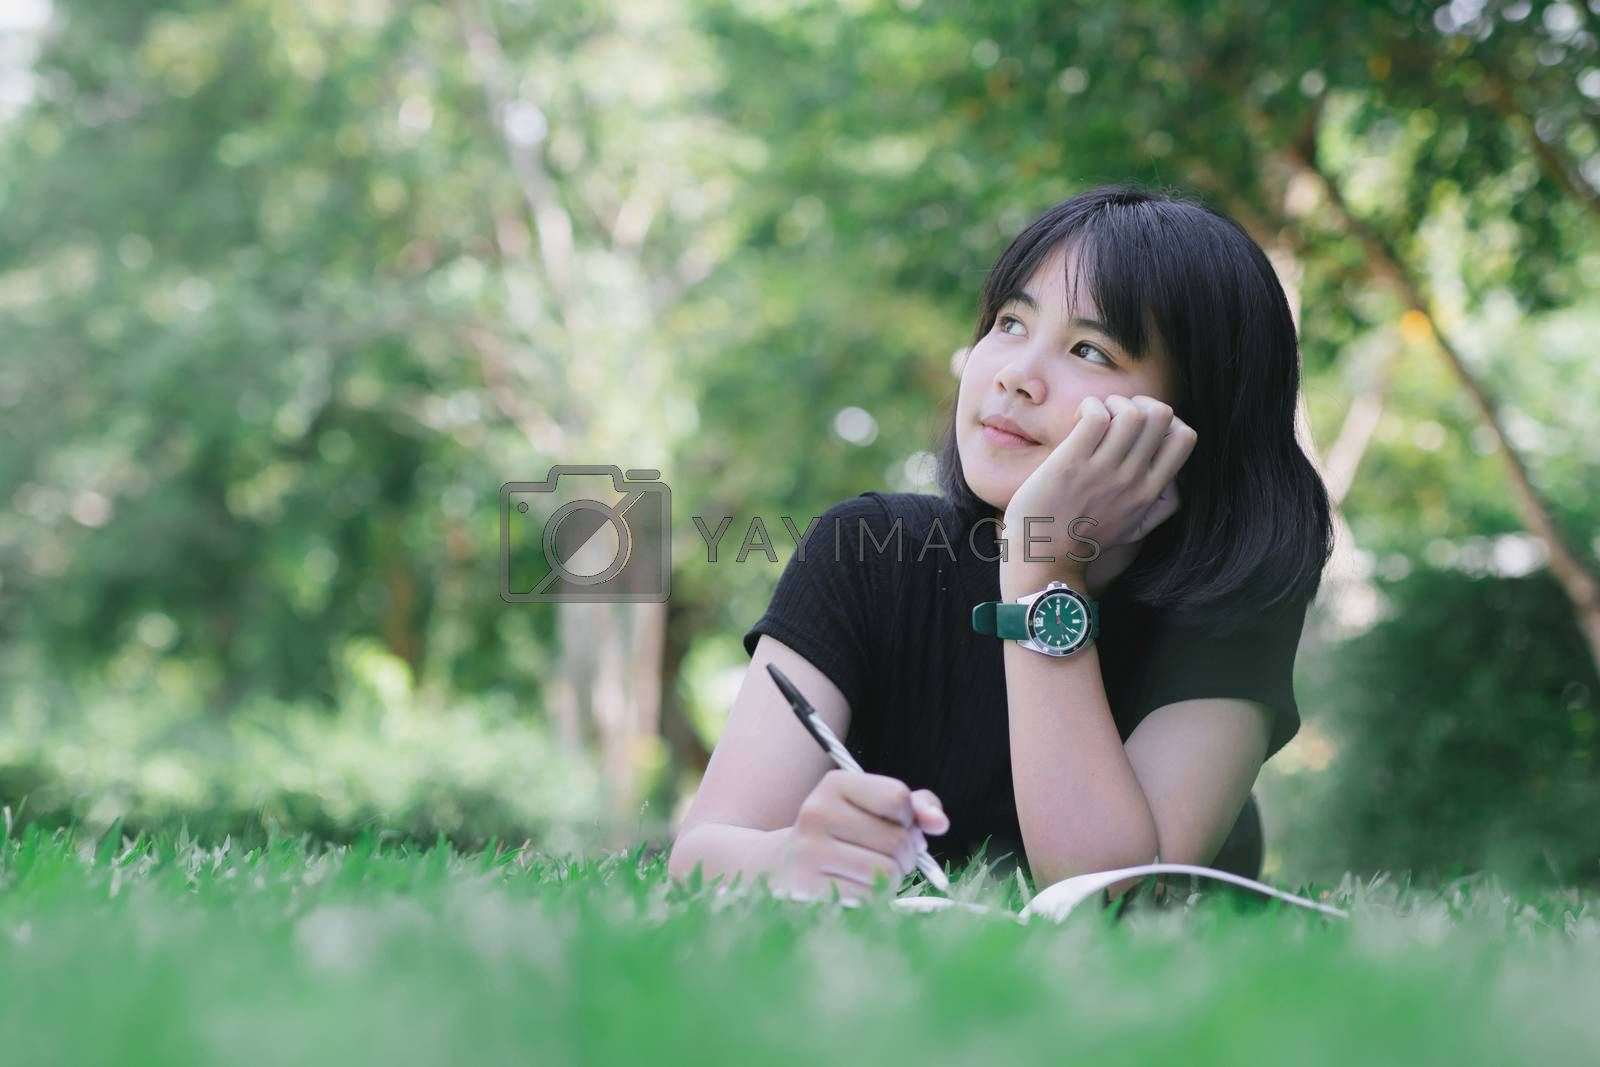 The girl is sitting in the lawn in the garden. by aekgasit